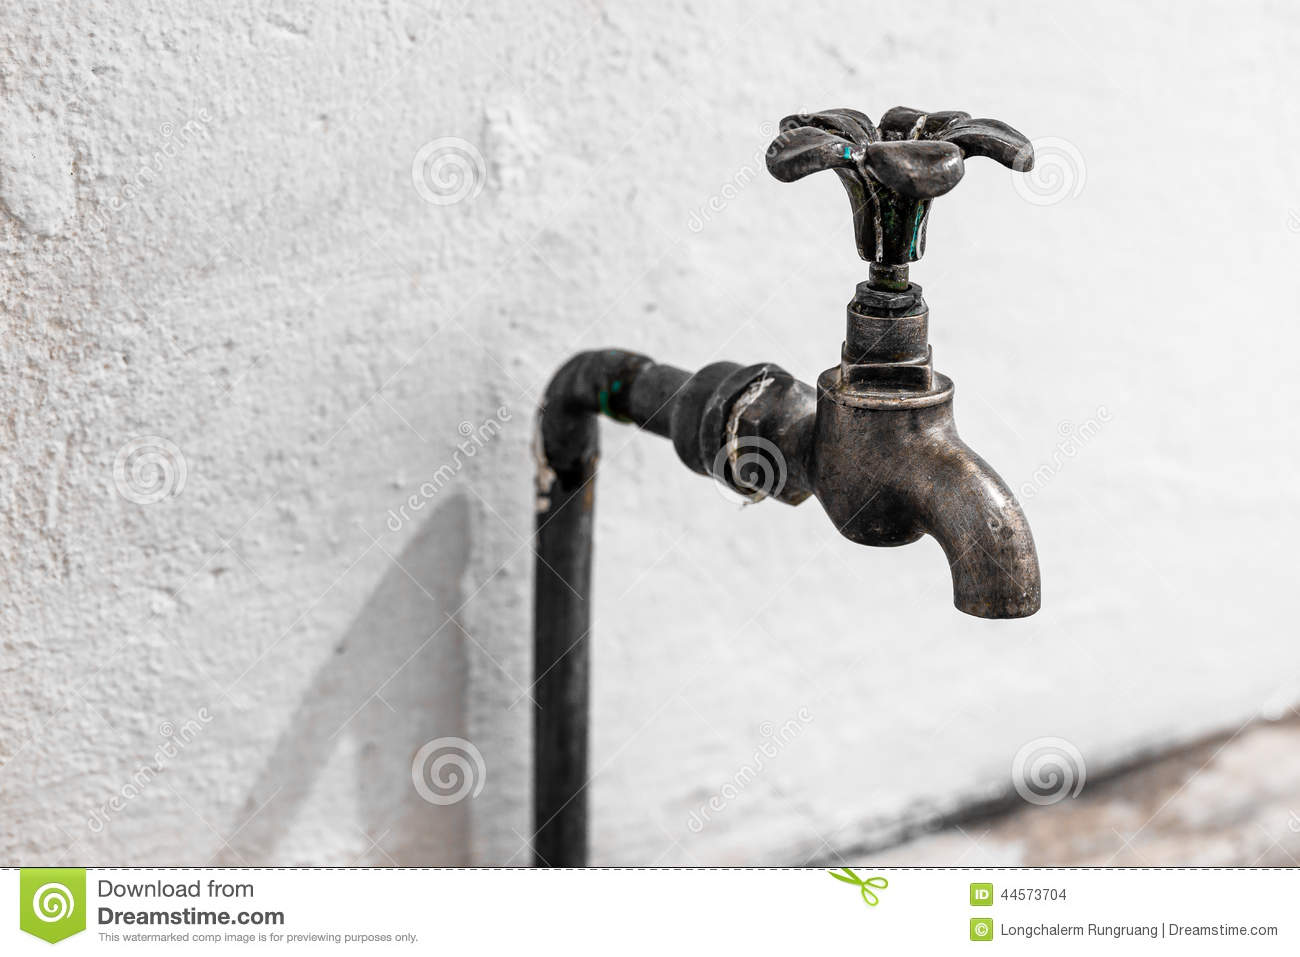 Old tap water stock photo. Image of metal, closeup, gold - 44573704